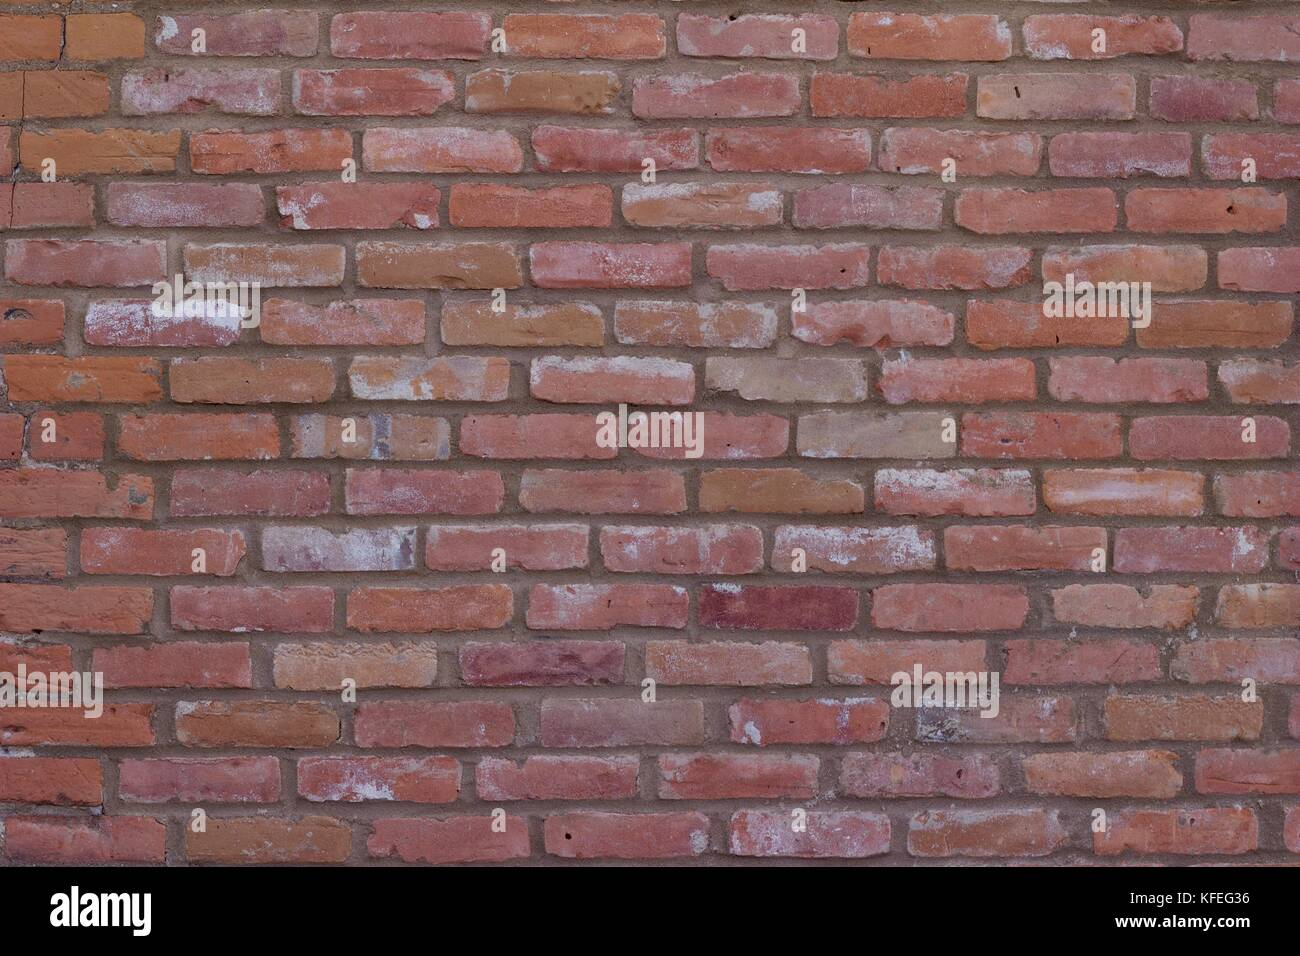 Coral Stone Wall Stock Photos Amp Coral Stone Wall Stock